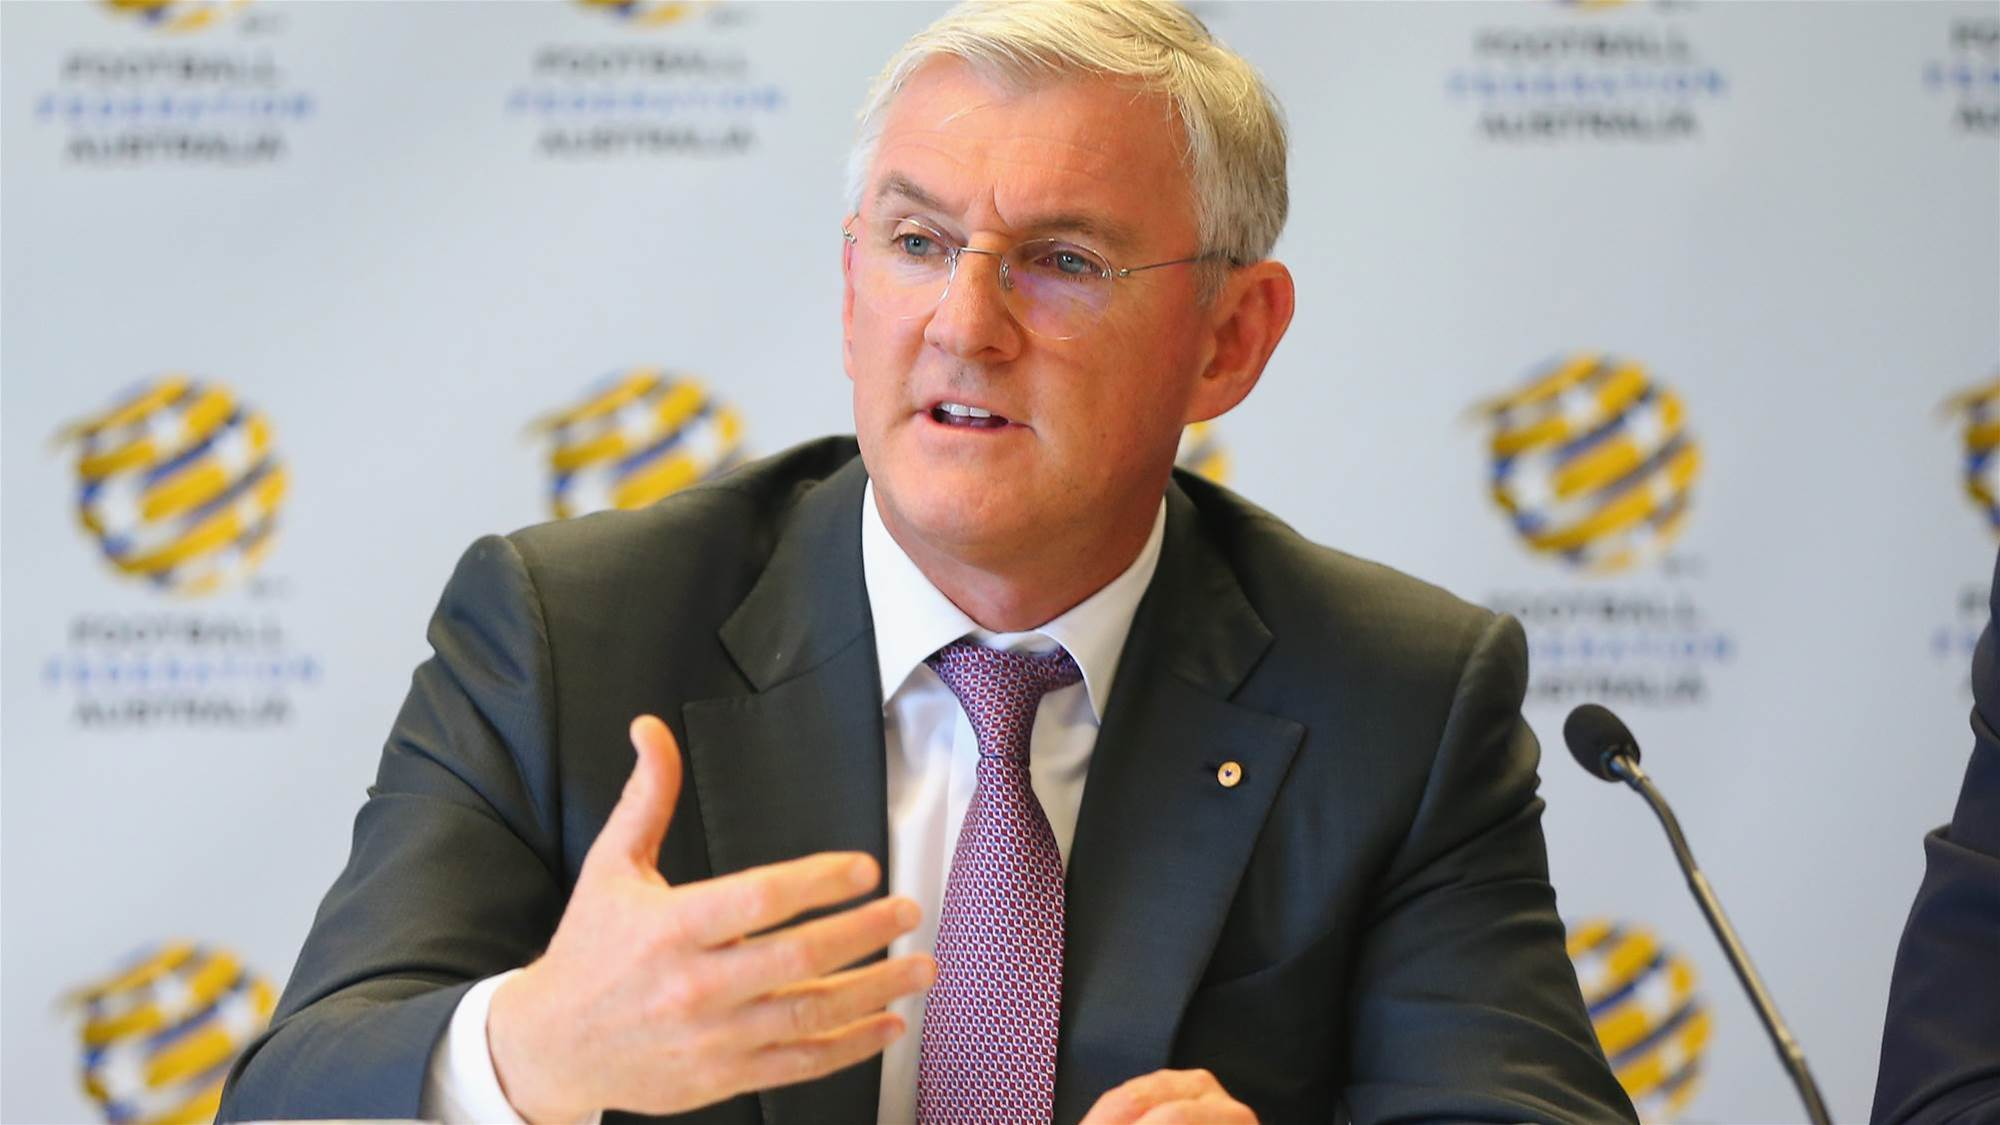 FFA extend expansion model discussions